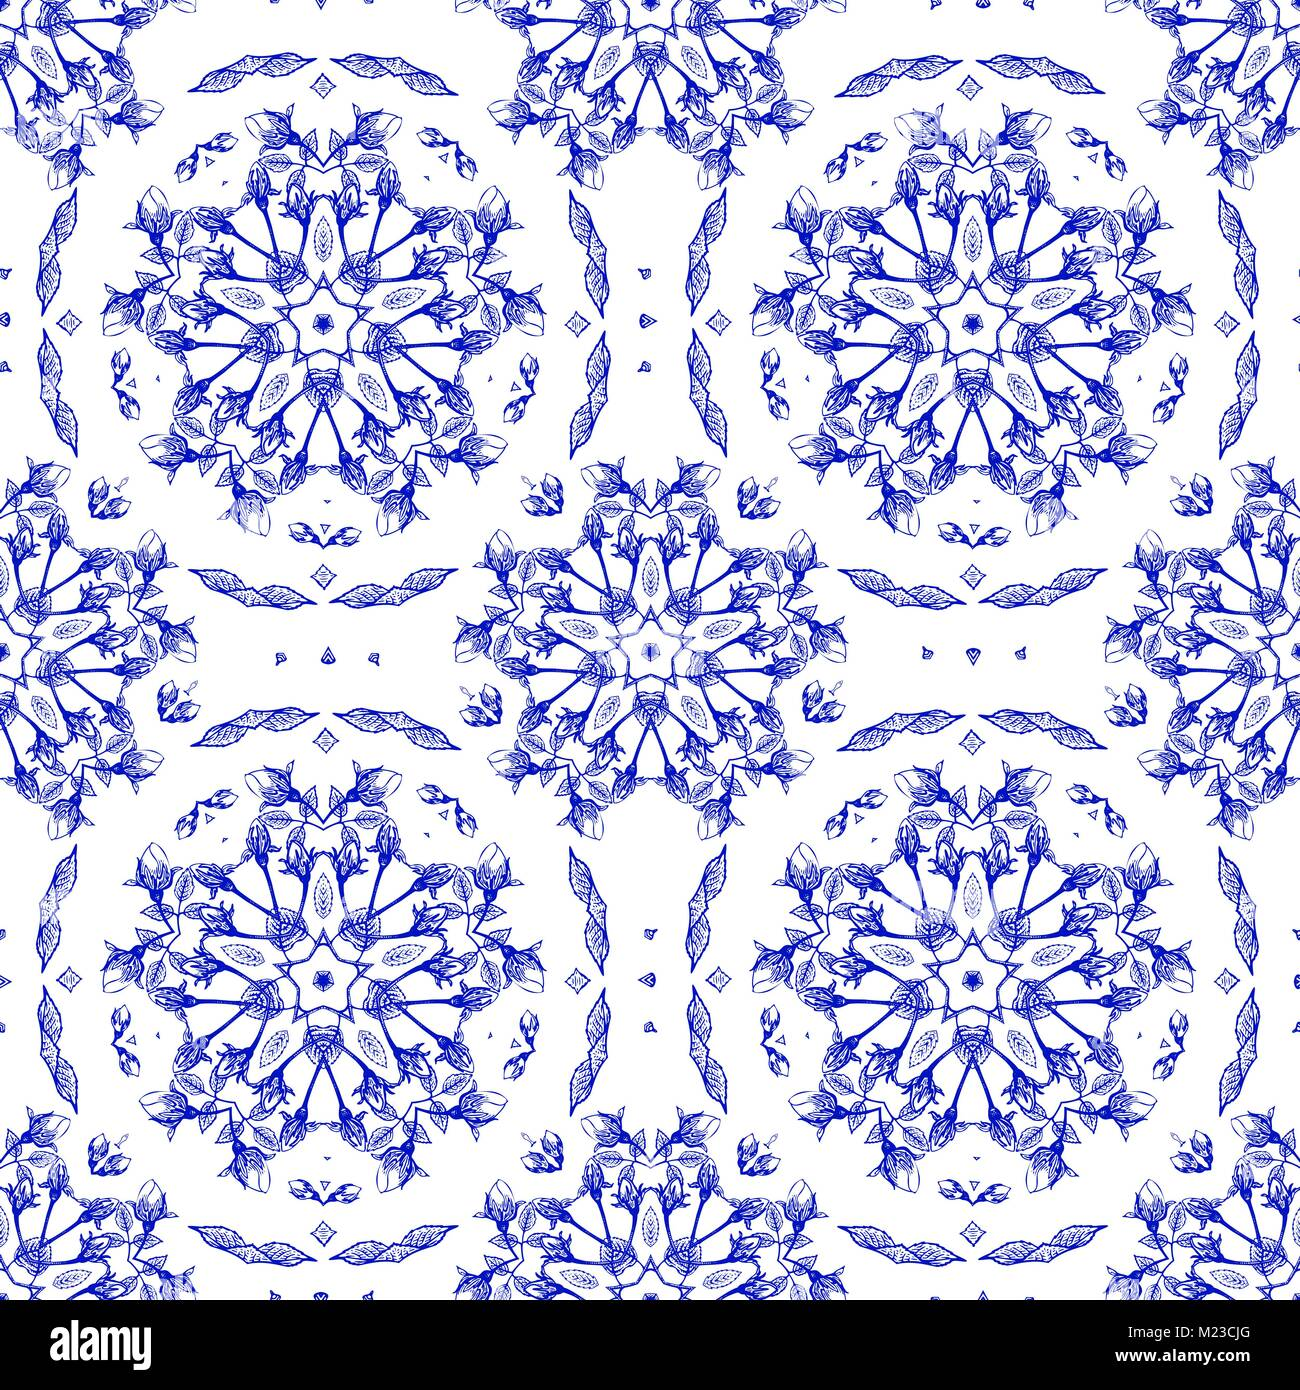 Vector Vintage Floral Ornate Seamless Pattern Luxury Floral Stock